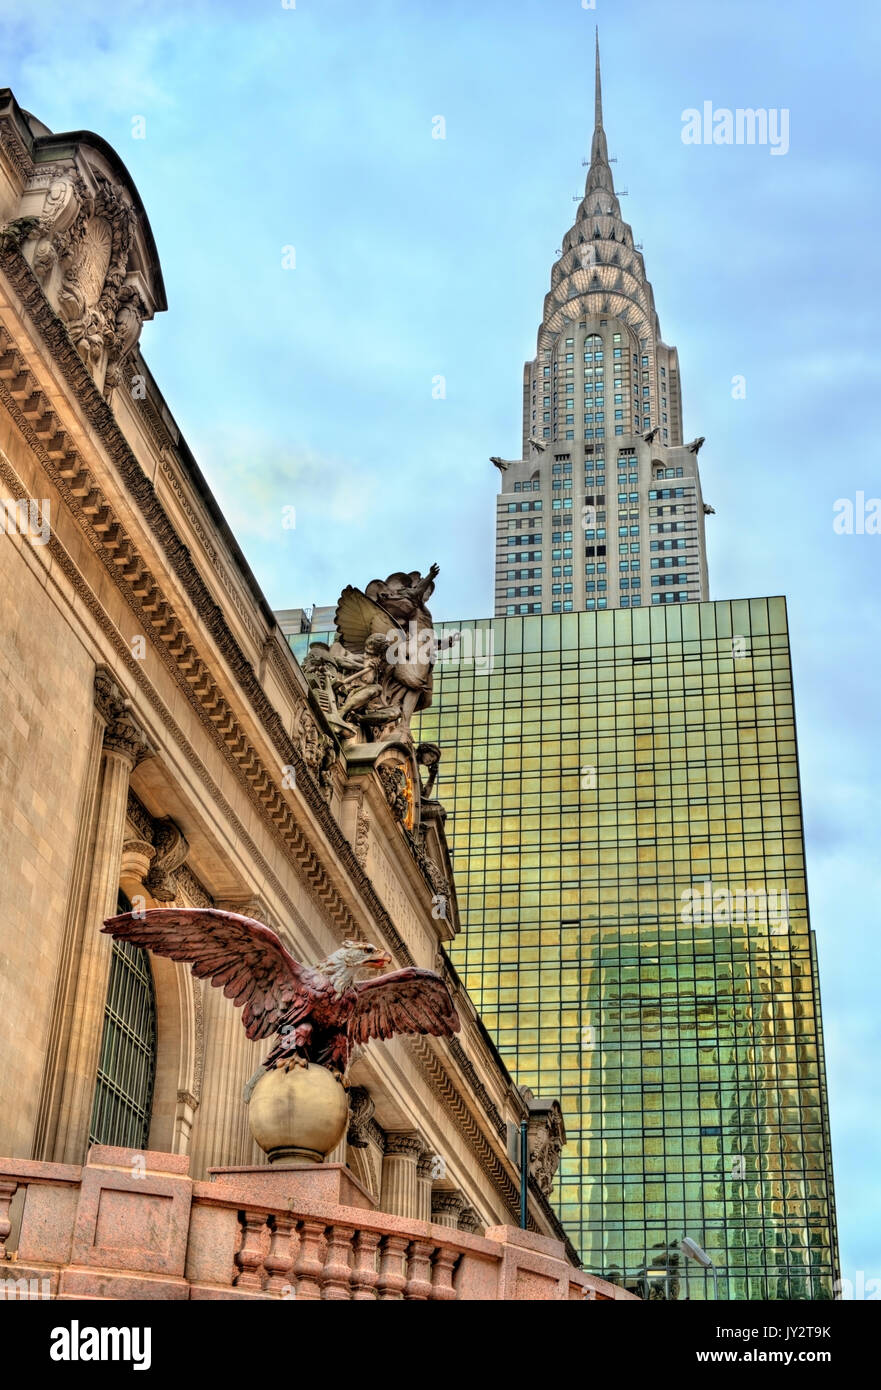 Grand Central Terminal in Manhattan, New York City - Stock Image